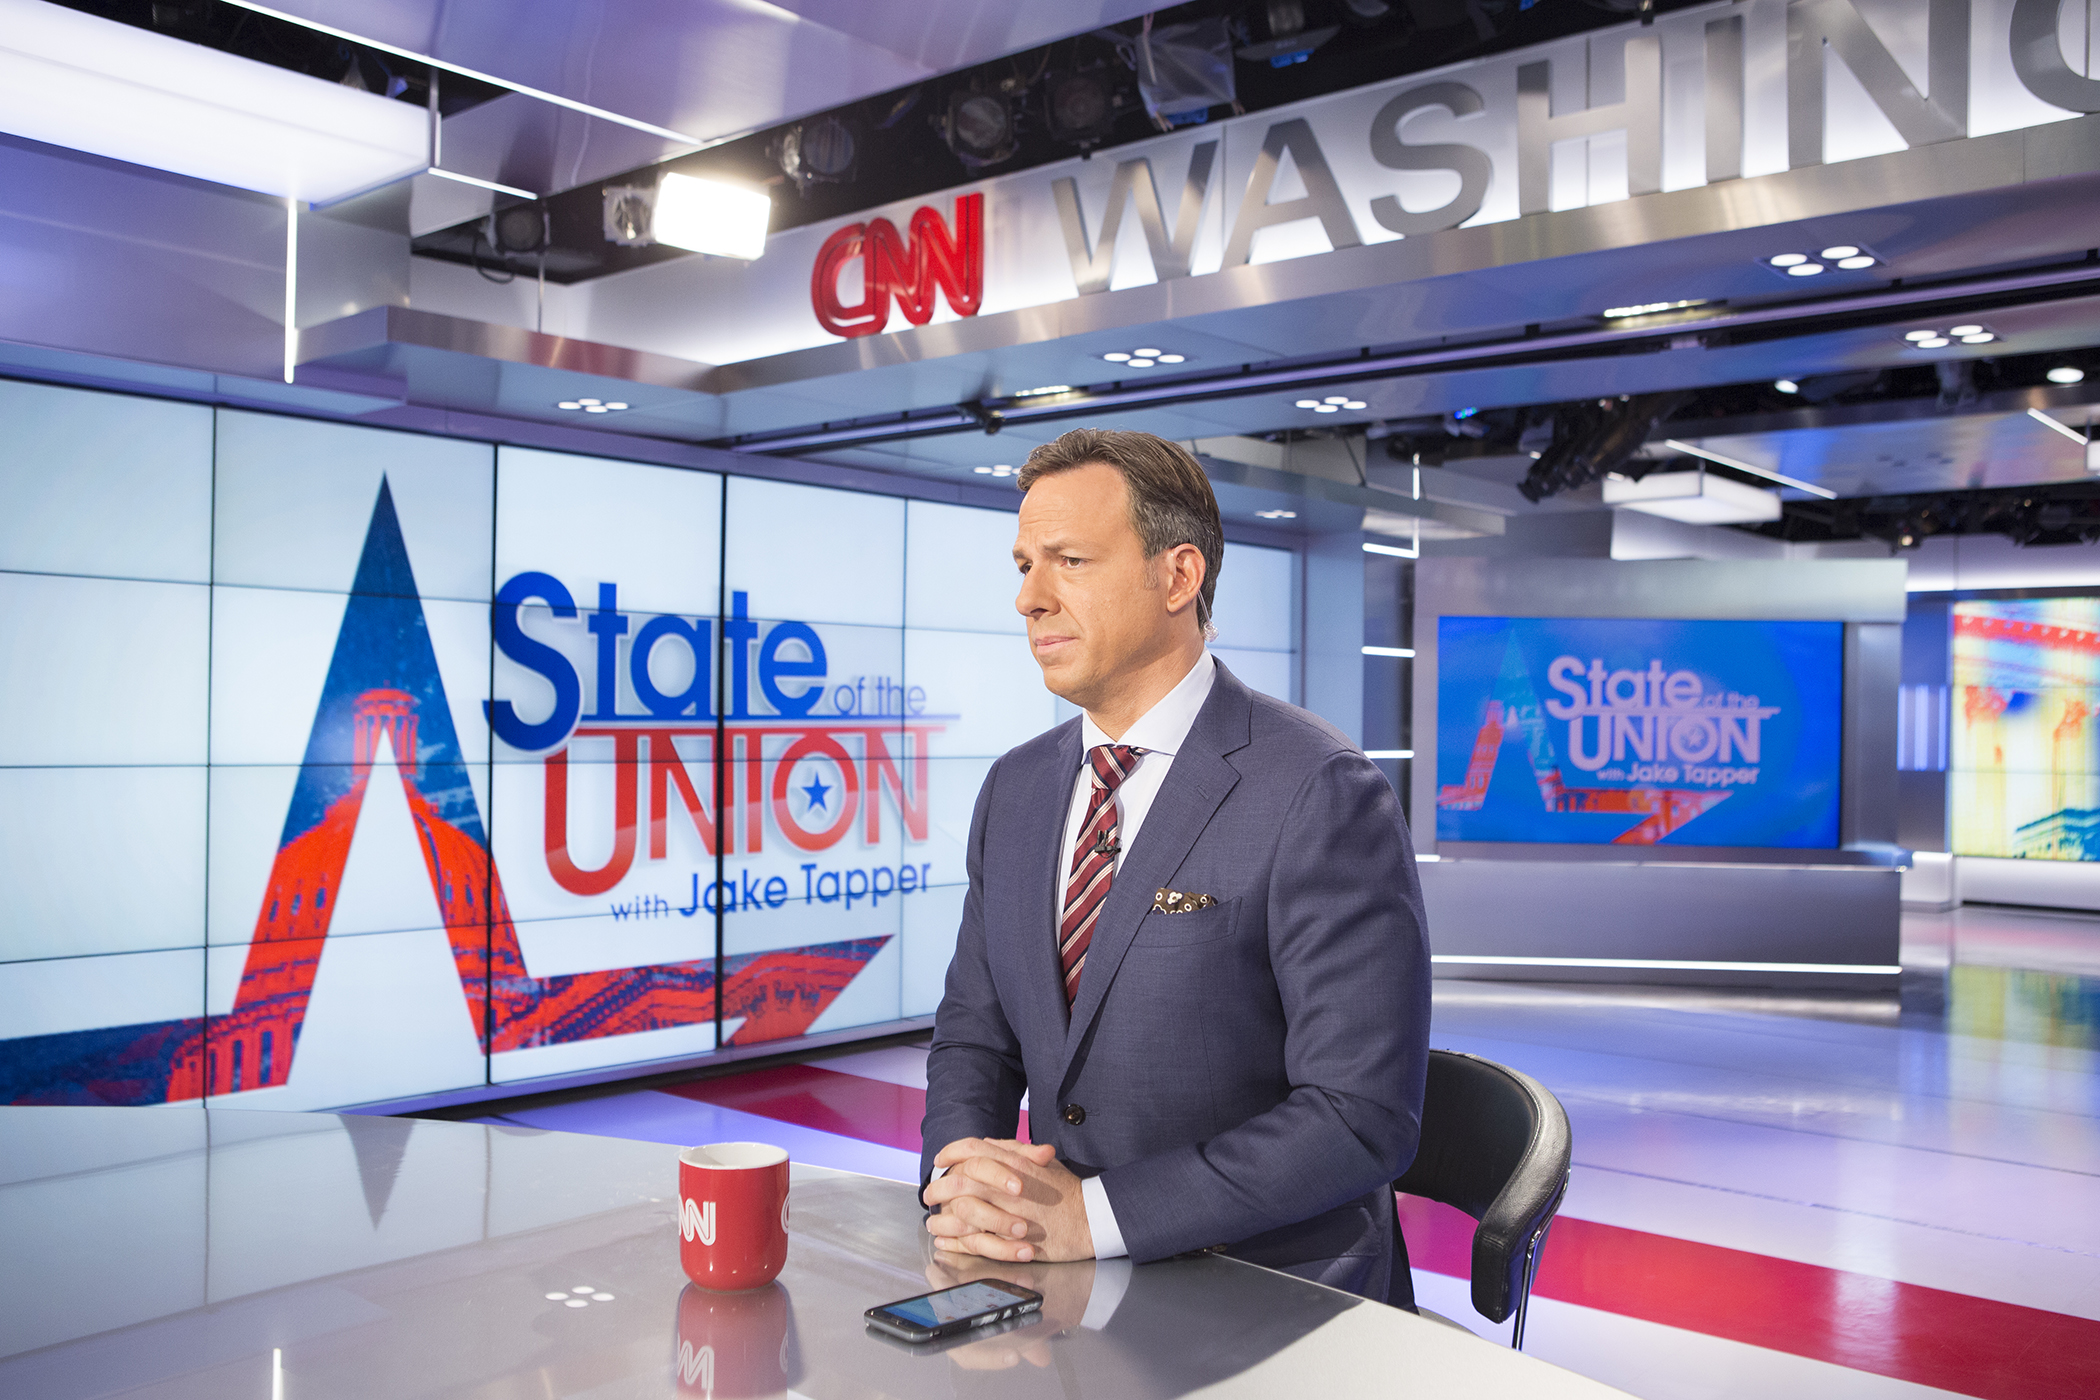 Jake Tapper to moderate CNN's first GOP debate